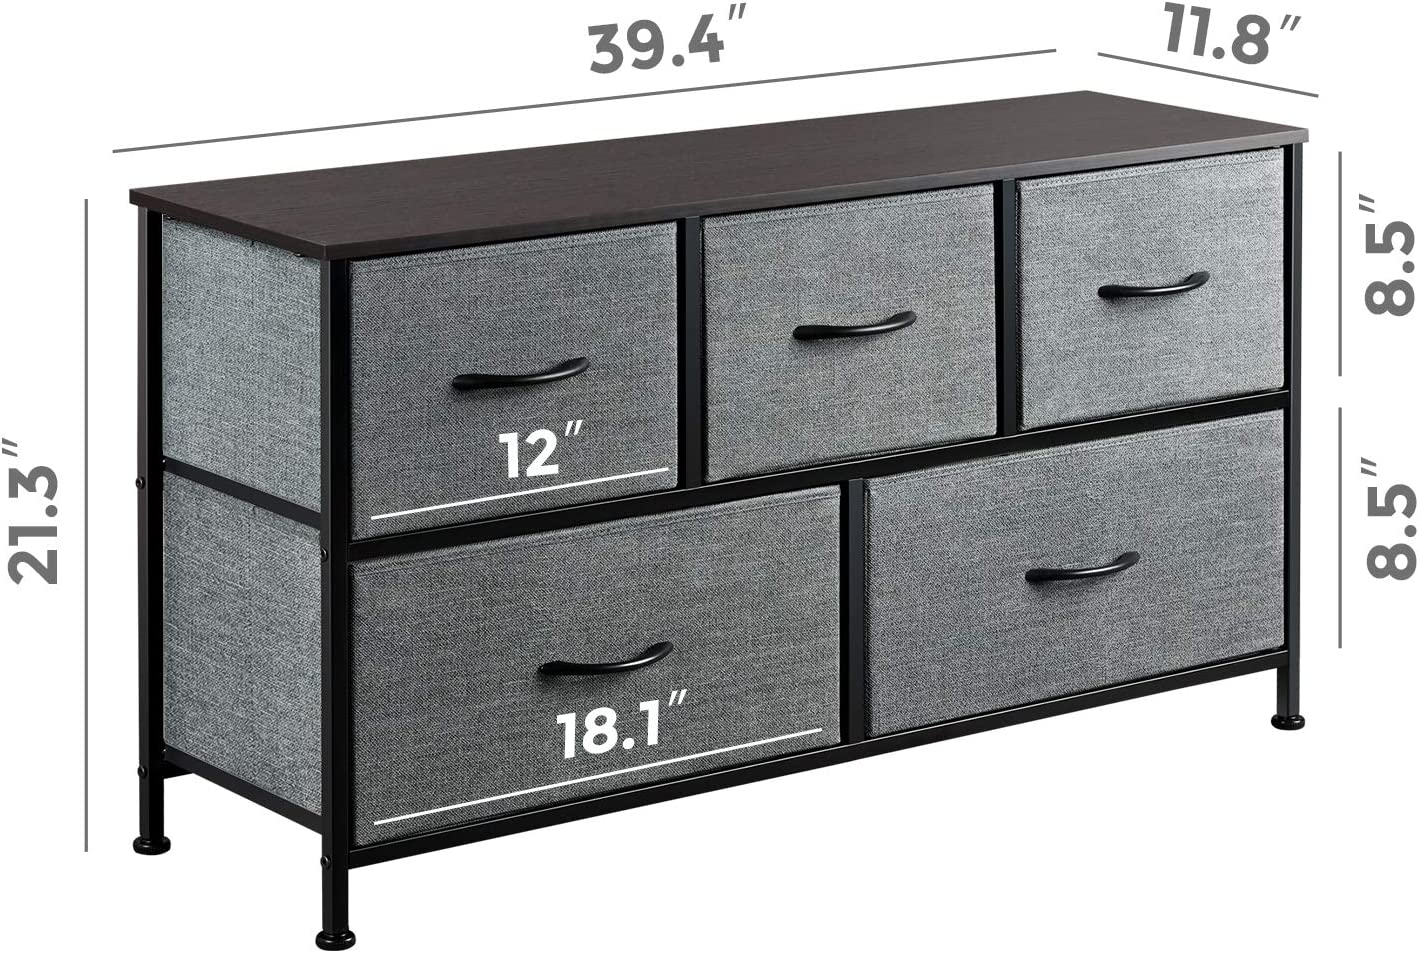 WLIVE Dresser with 5 Drawers, Dressers for Bedroom, Fabric Storage Tower, Hallway, Entryway, Closets, Sturdy Steel Frame, Wood Top, Easy Pull Handle -